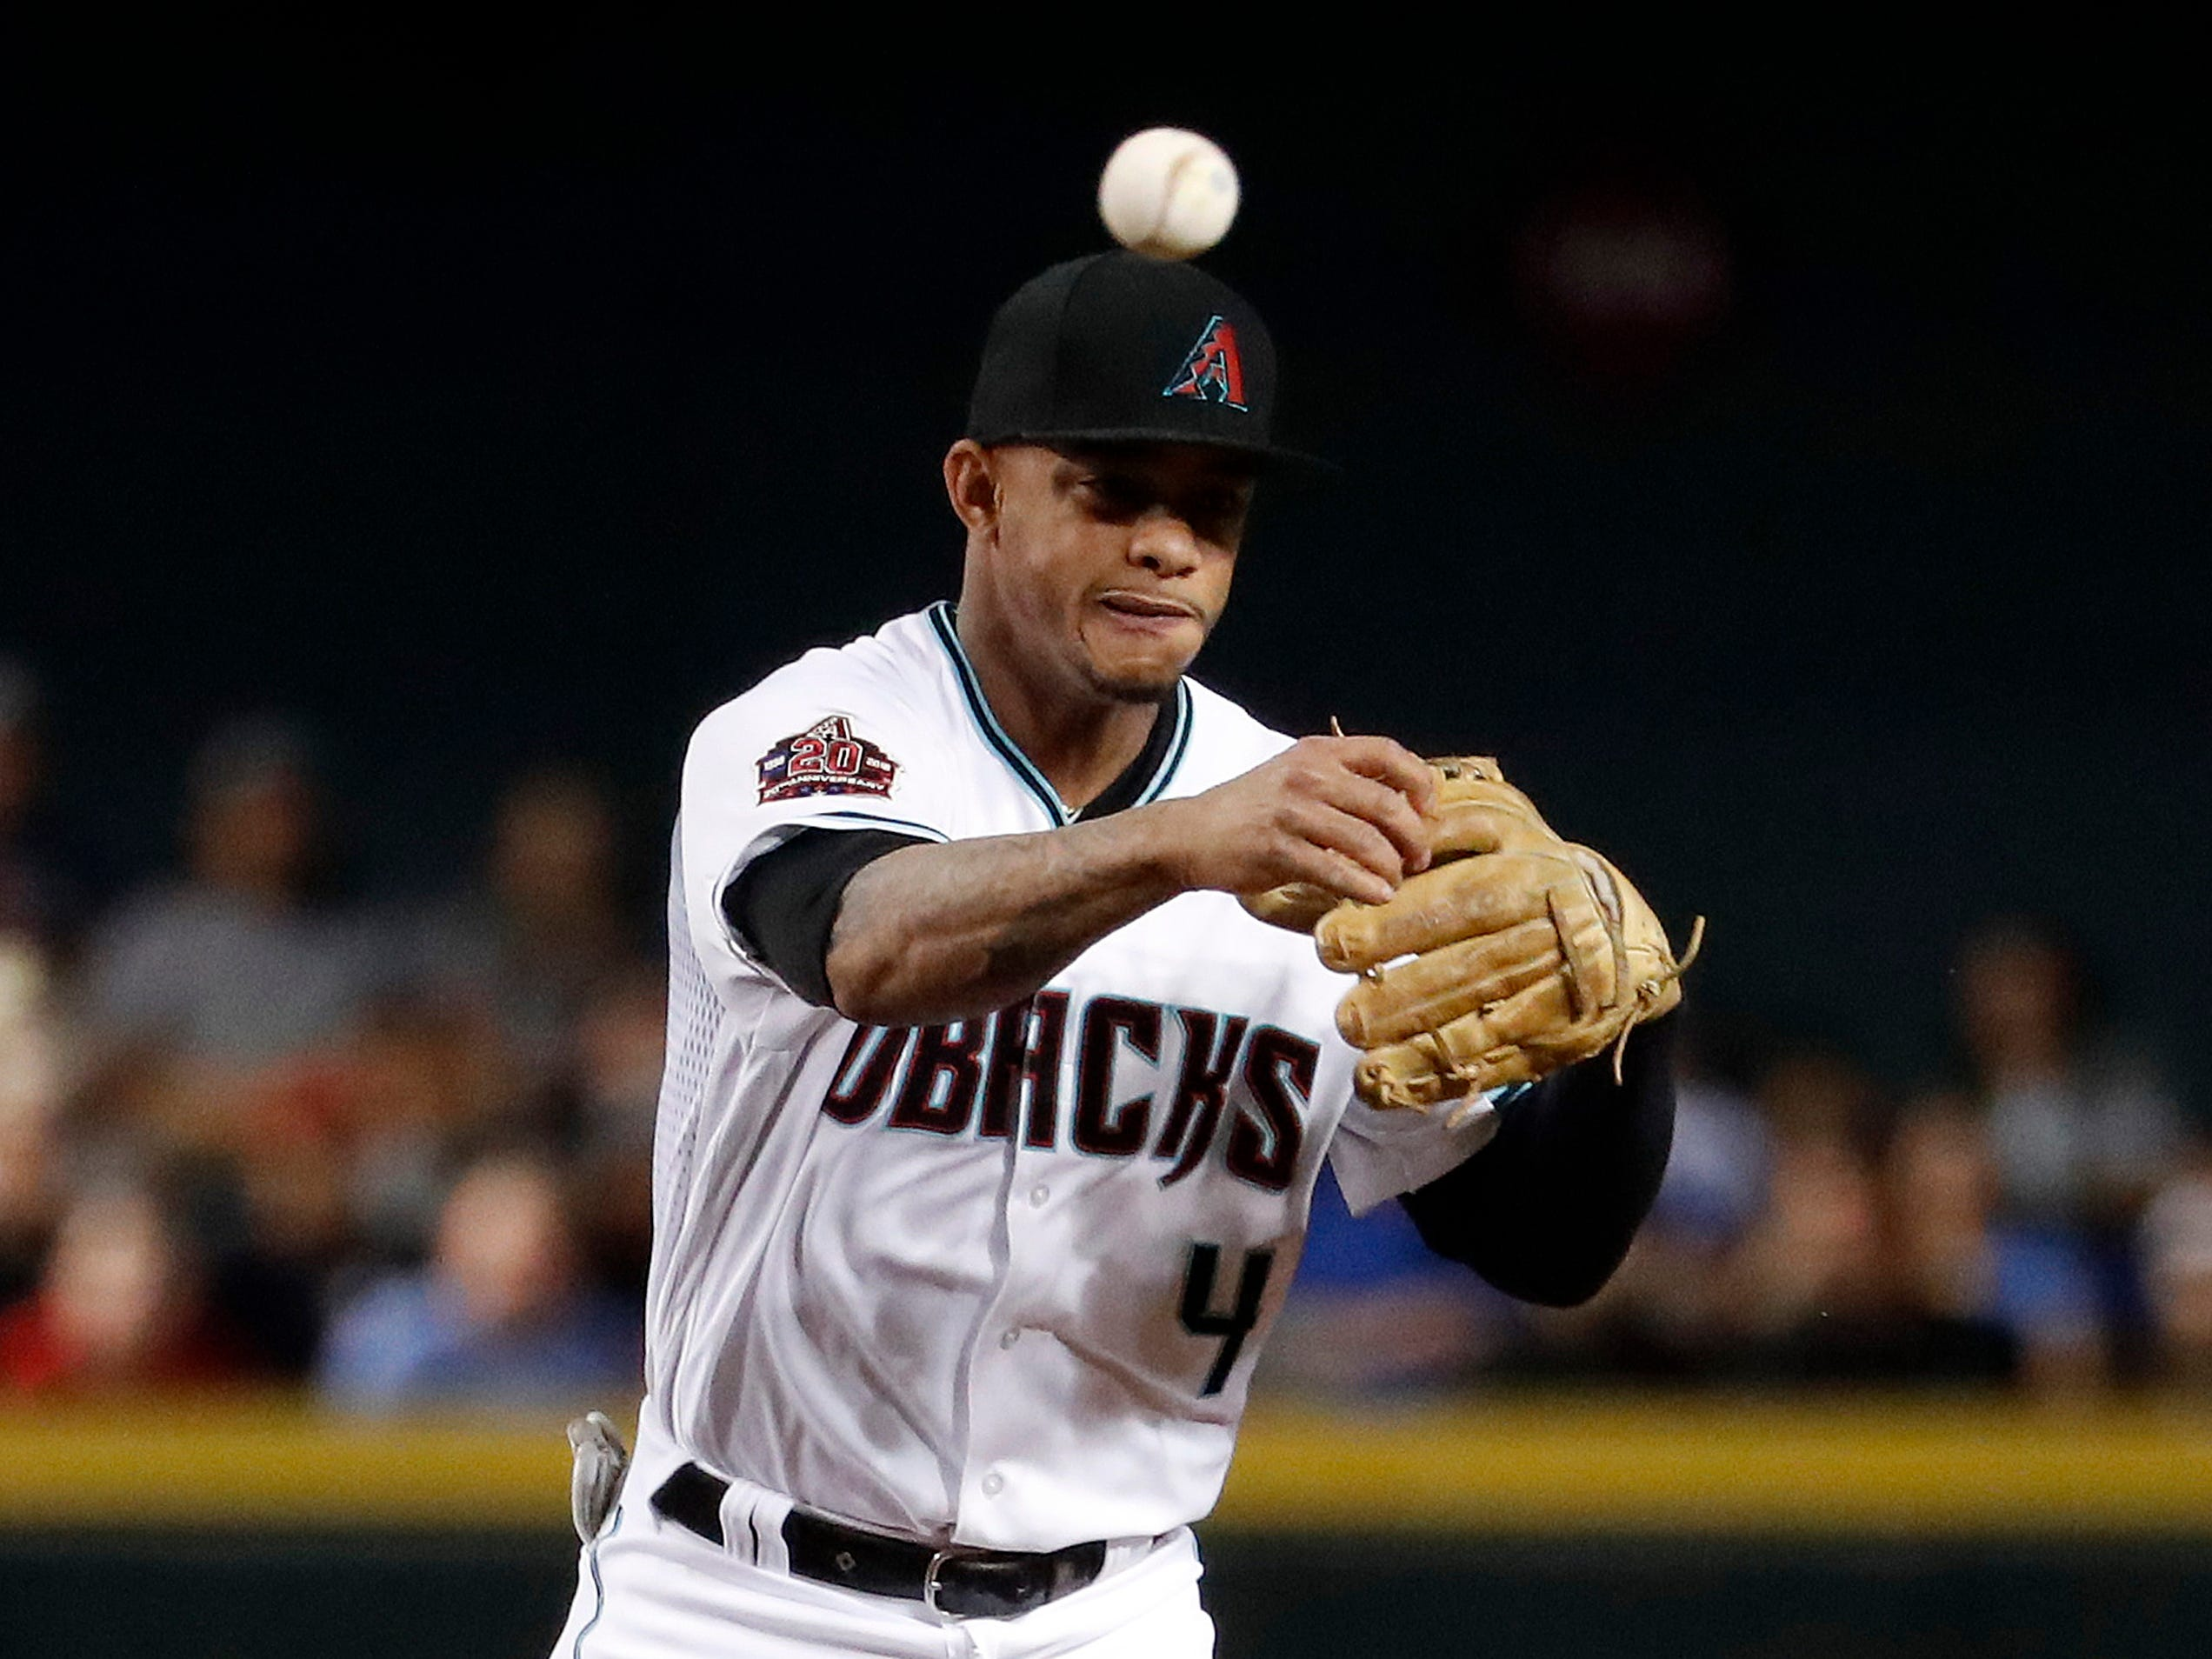 Arizona Diamondbacks' Ketel Marte throws to first against the Los Angeles Dodgers during the third inning of a baseball game, Tuesday, Sept. 25, 2018, in Phoenix. (AP Photo/Matt York)